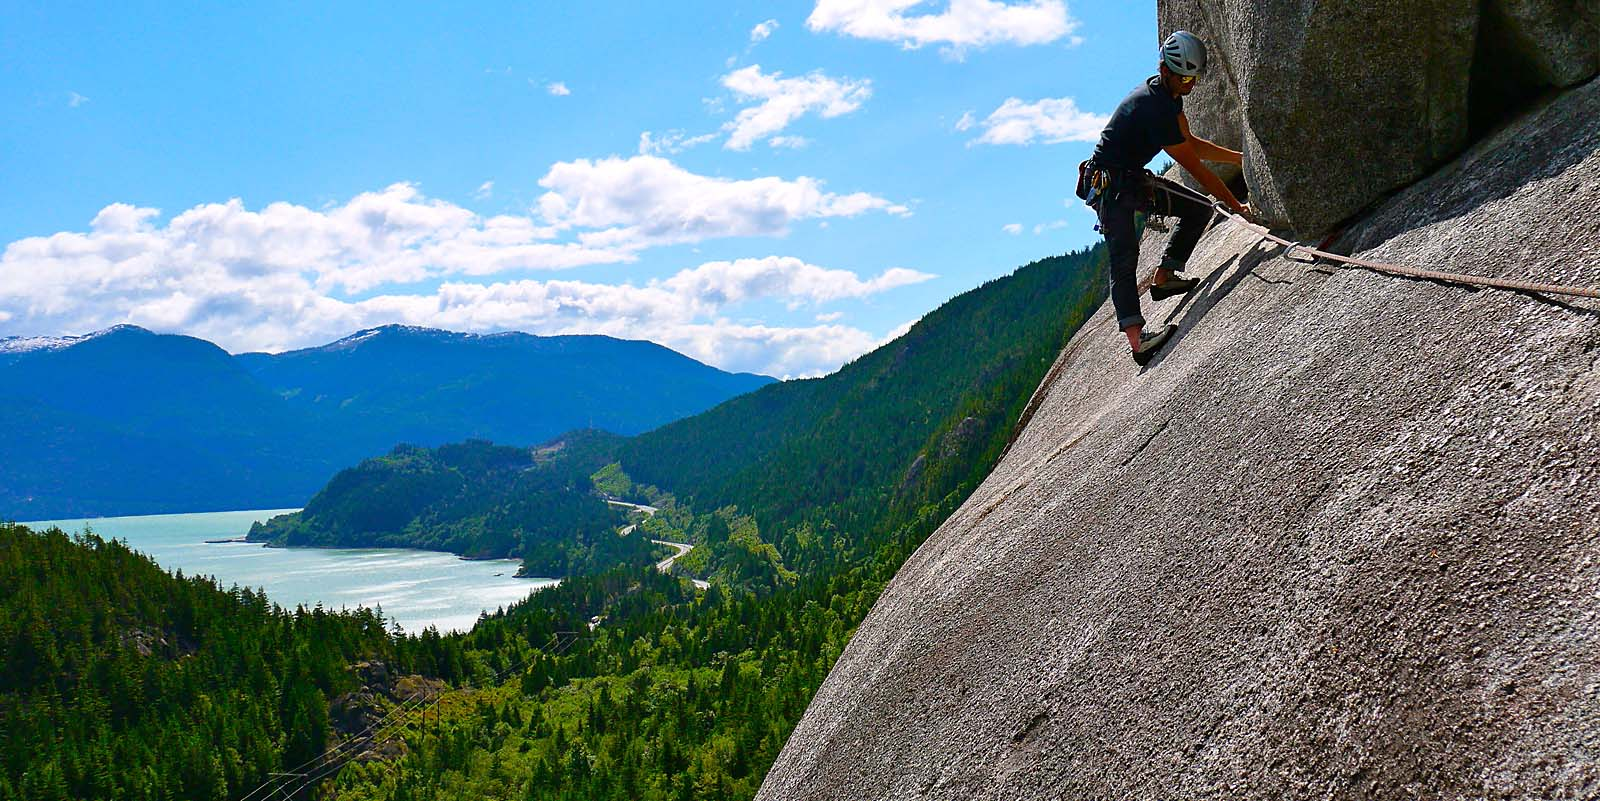 an analysis of rock climbing View rock climbing research papers on academiaedu for free.